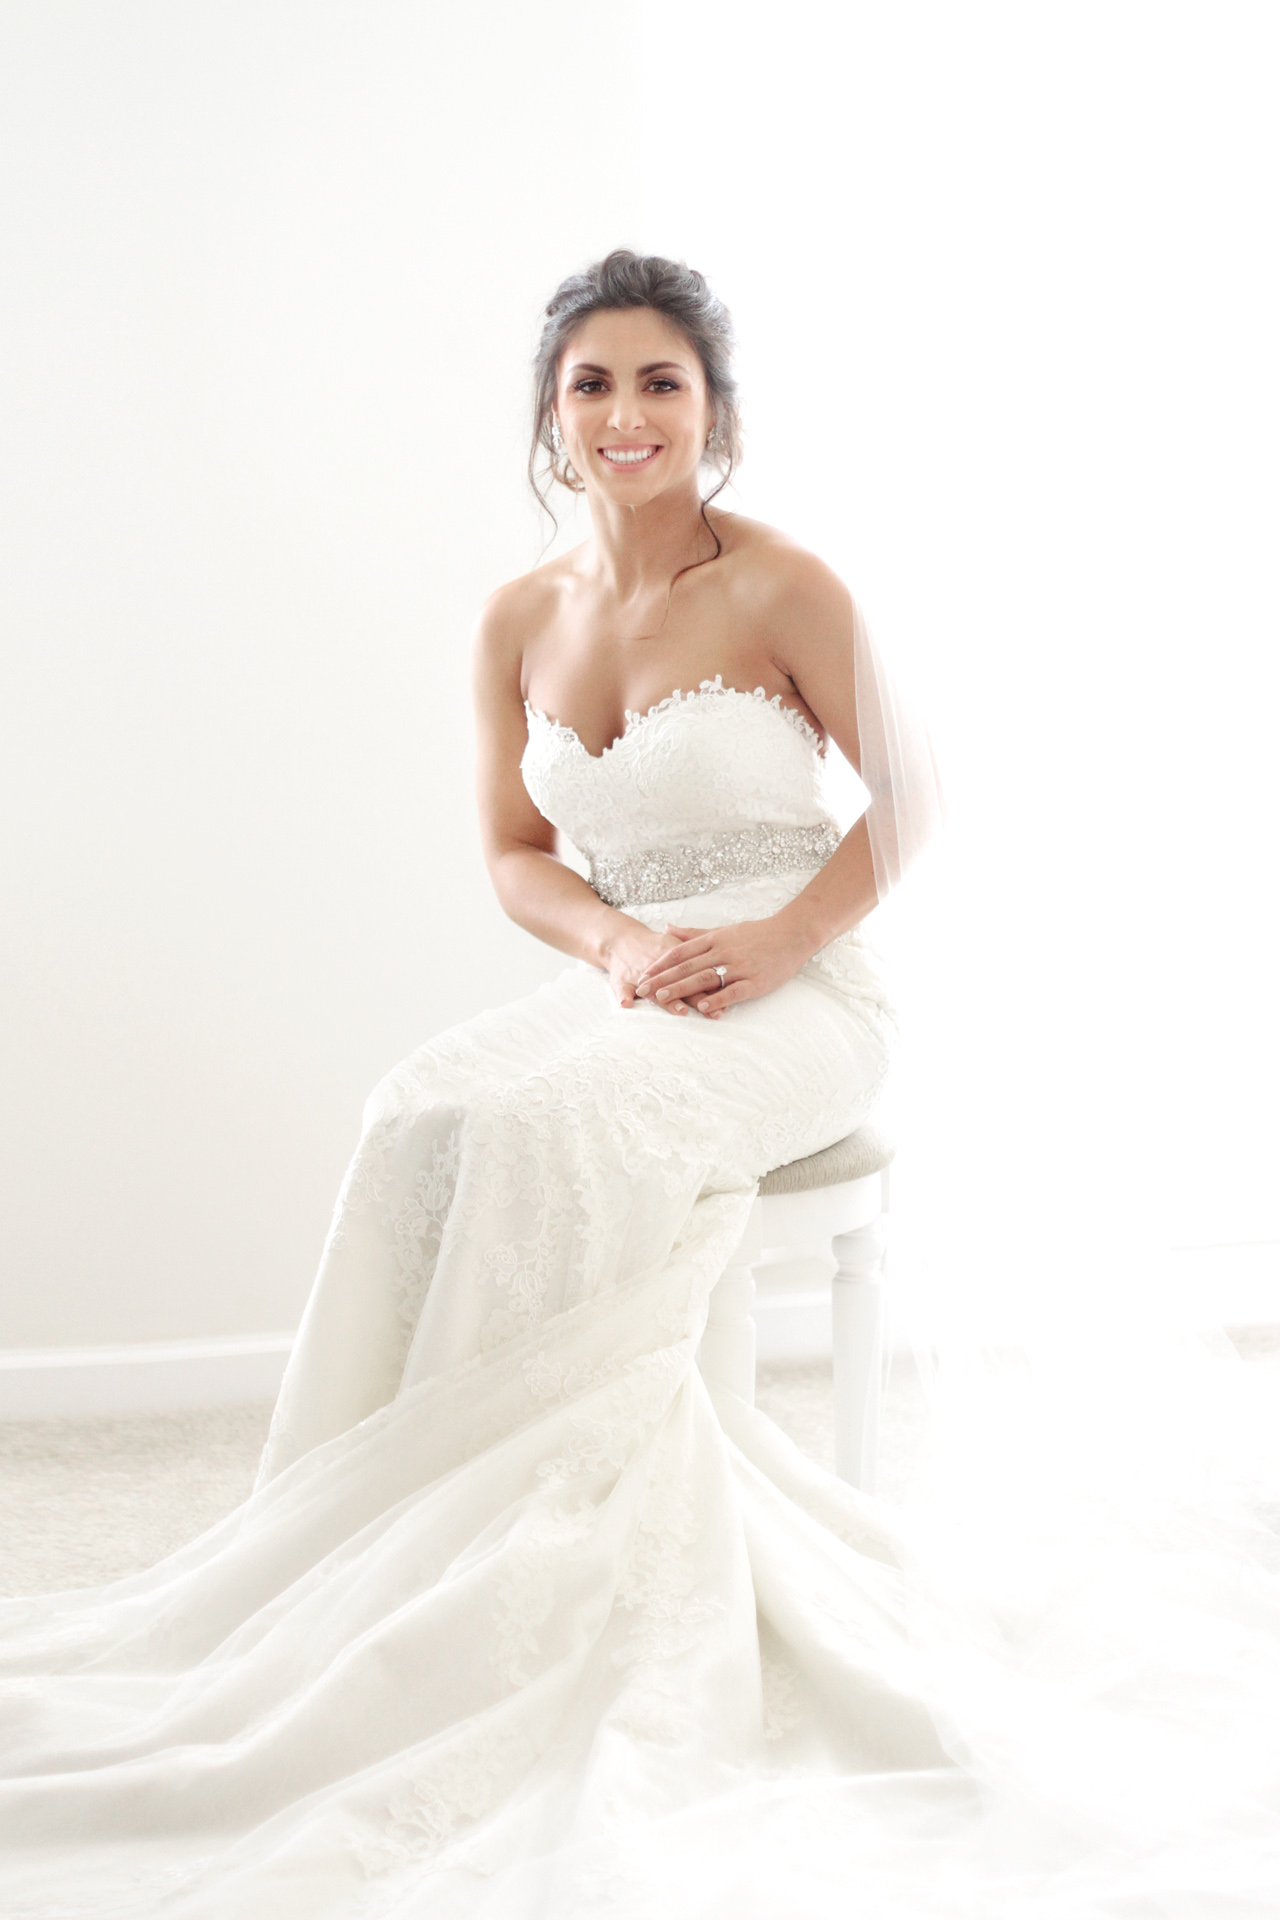 seated-bride-araujo